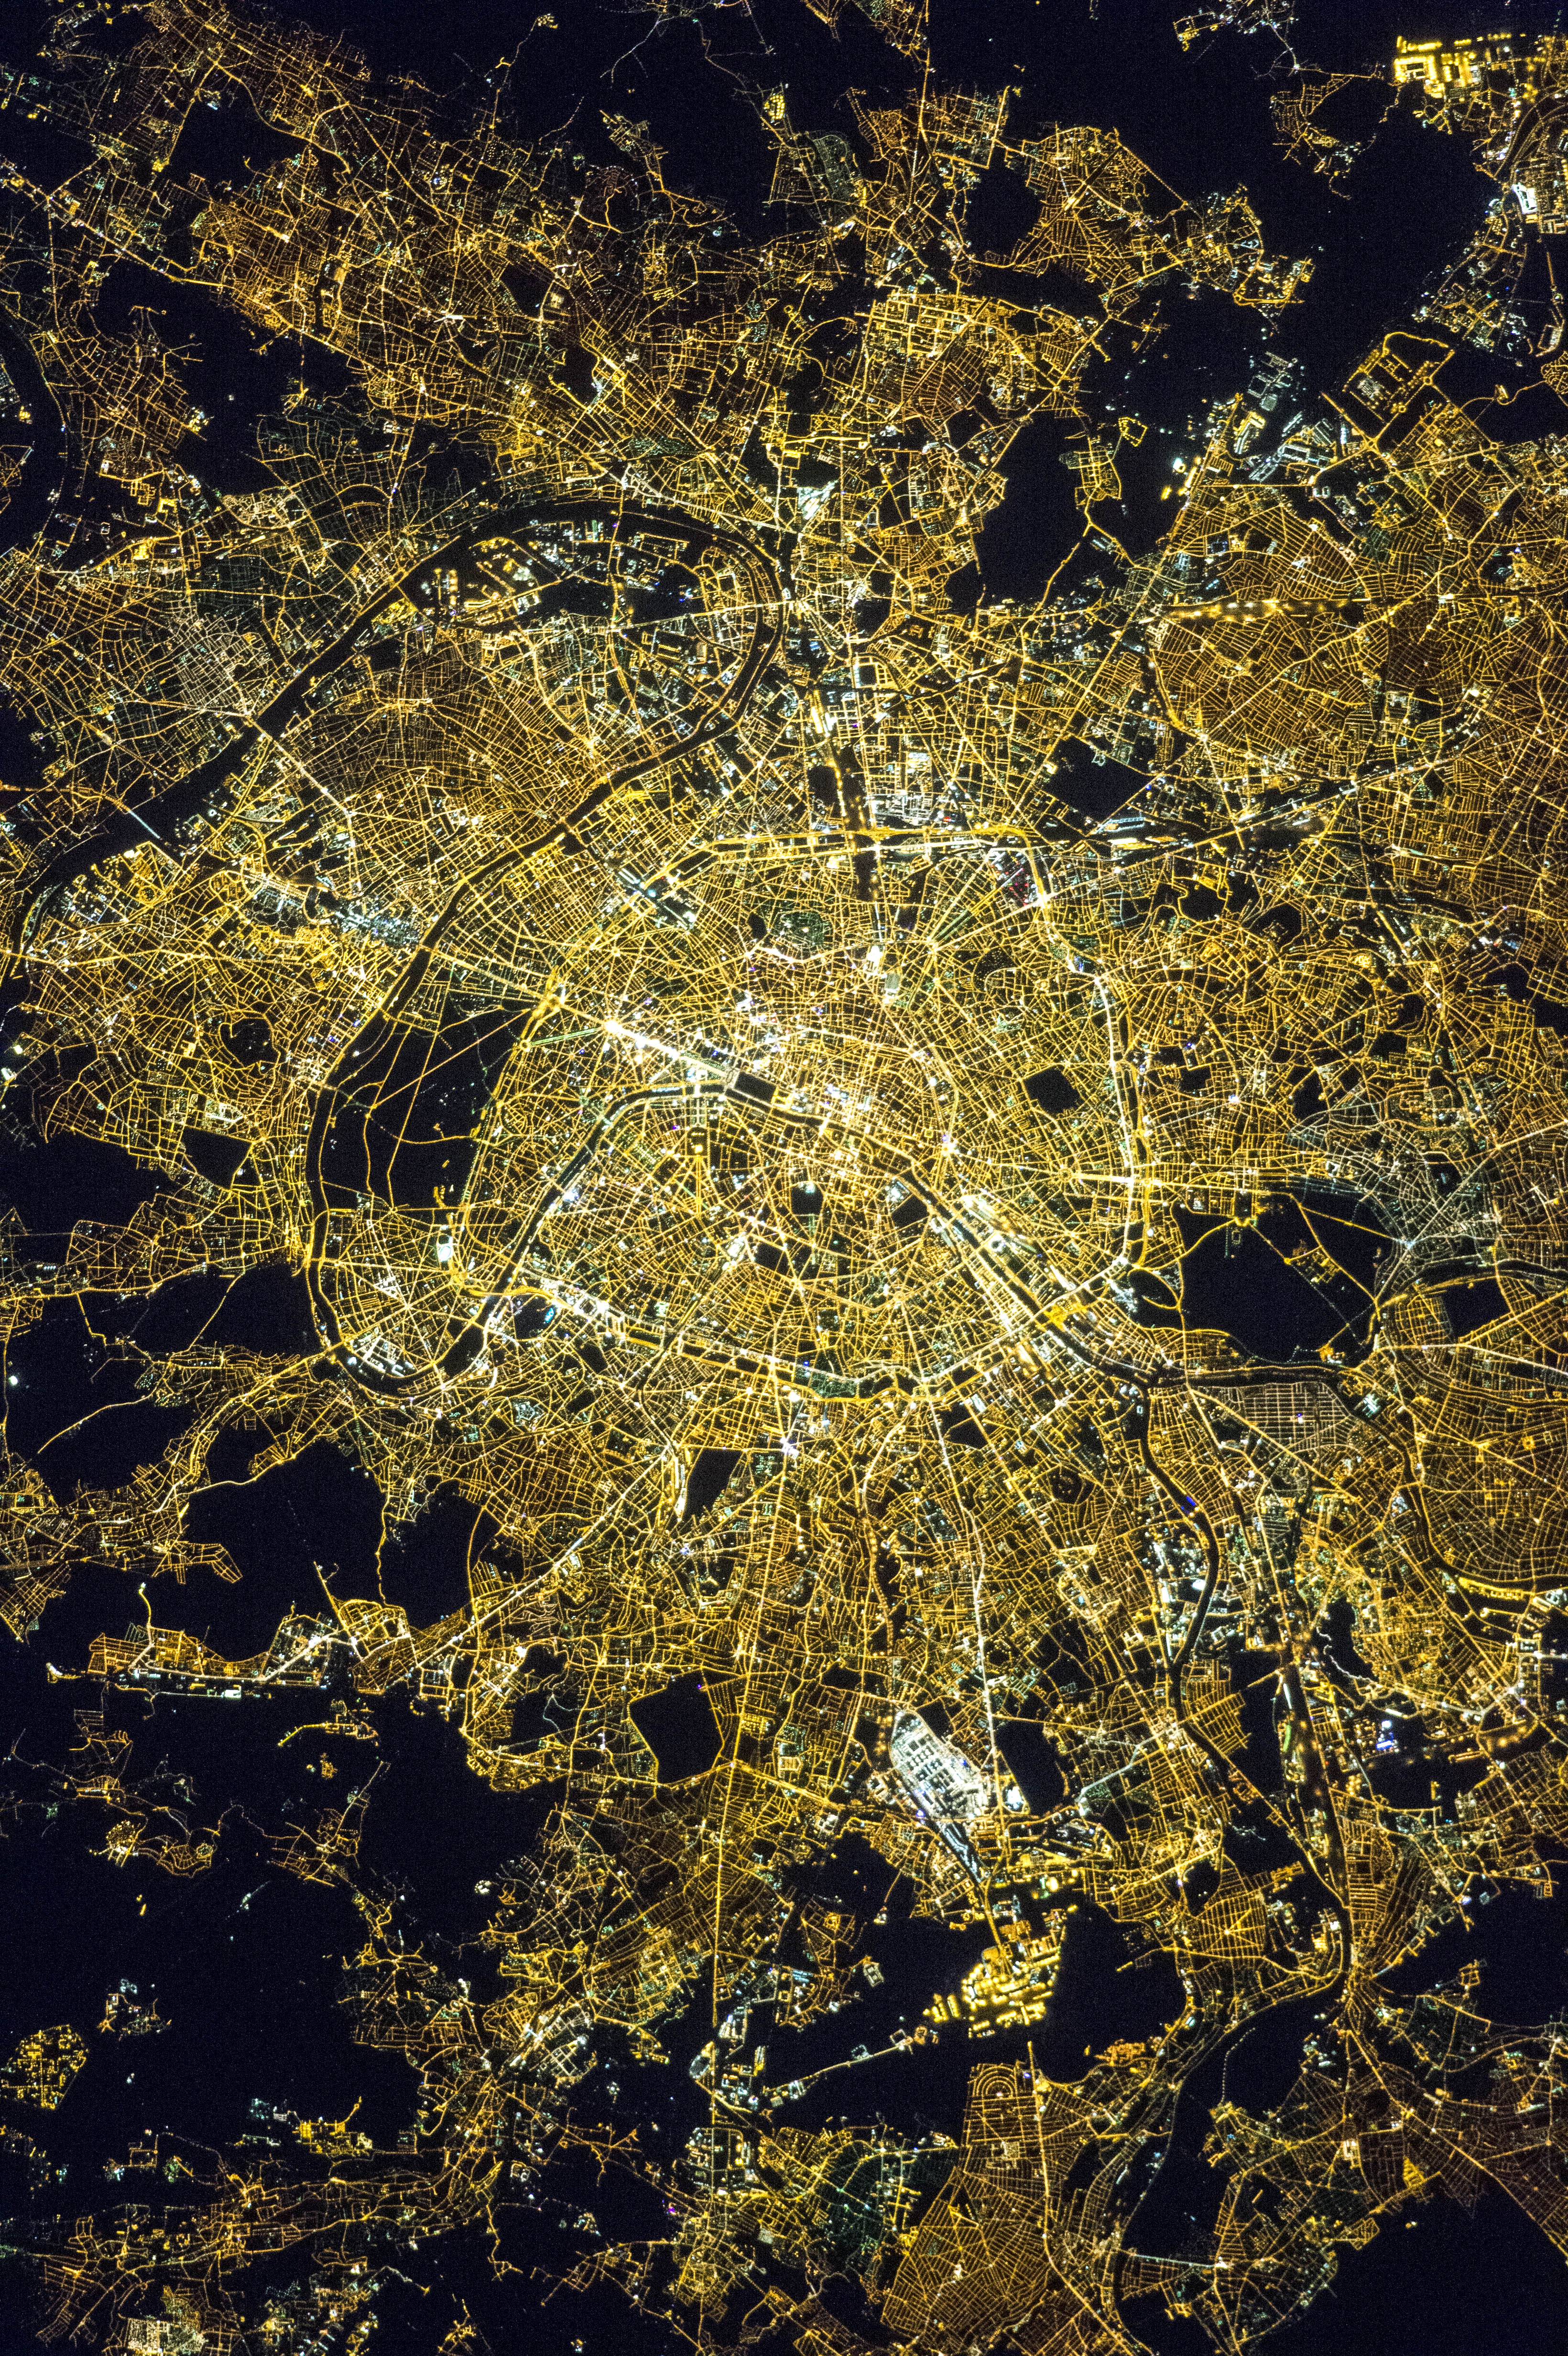 Paris from space photo